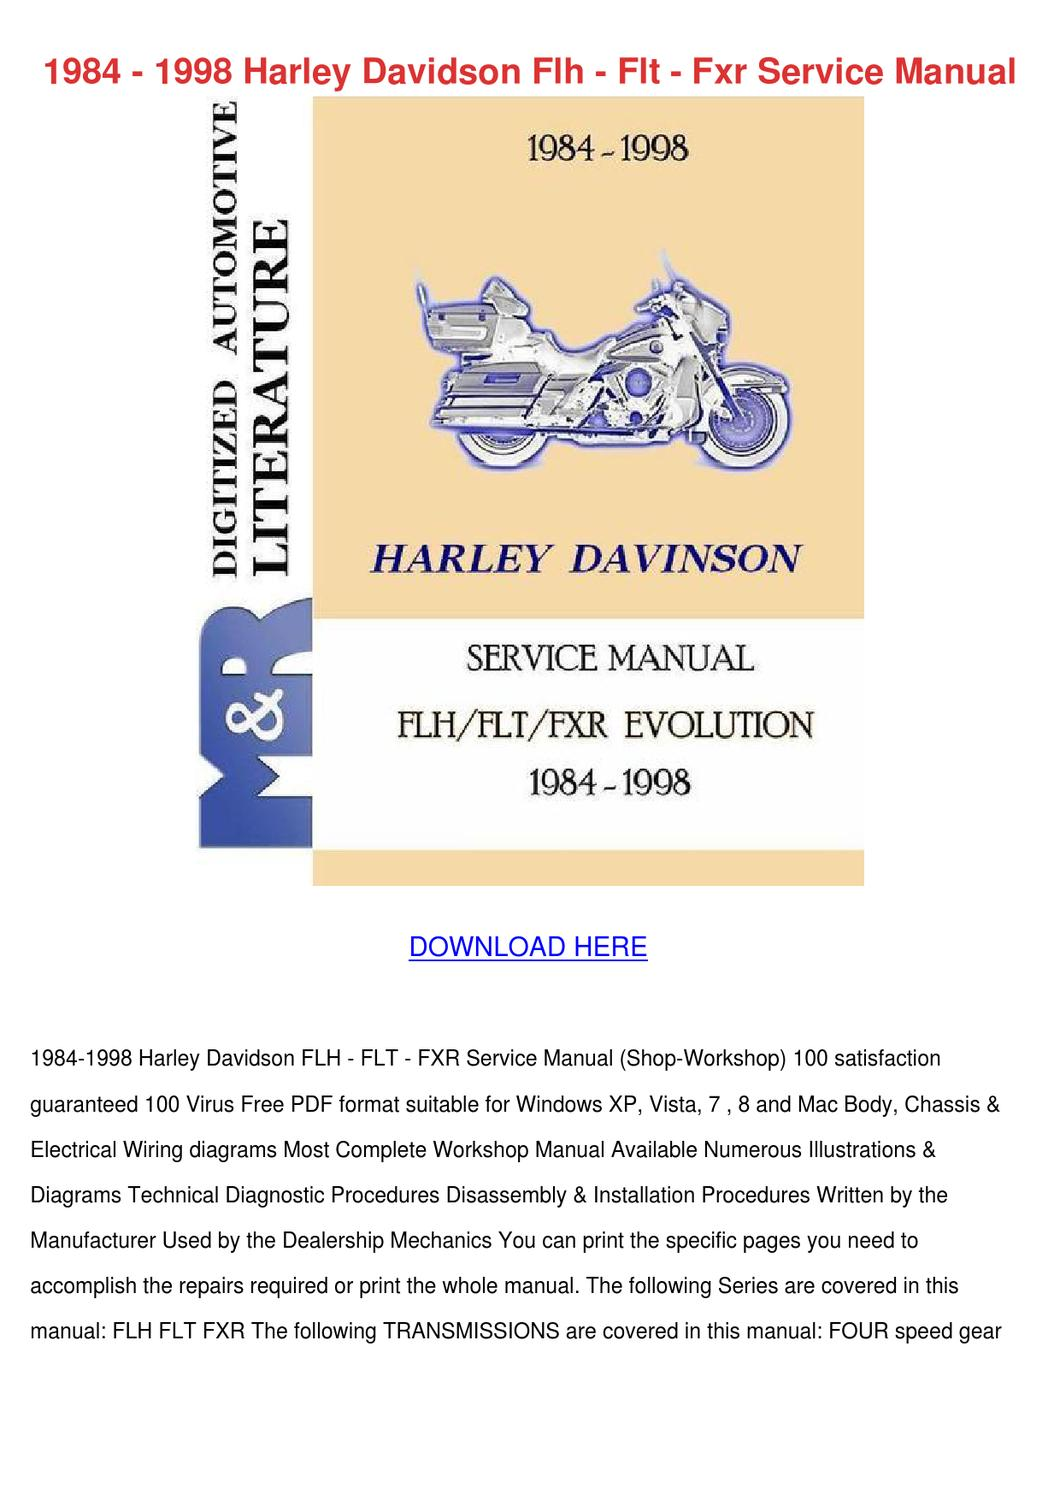 hight resolution of 1984 1998 harley davidson flh flt fxr service